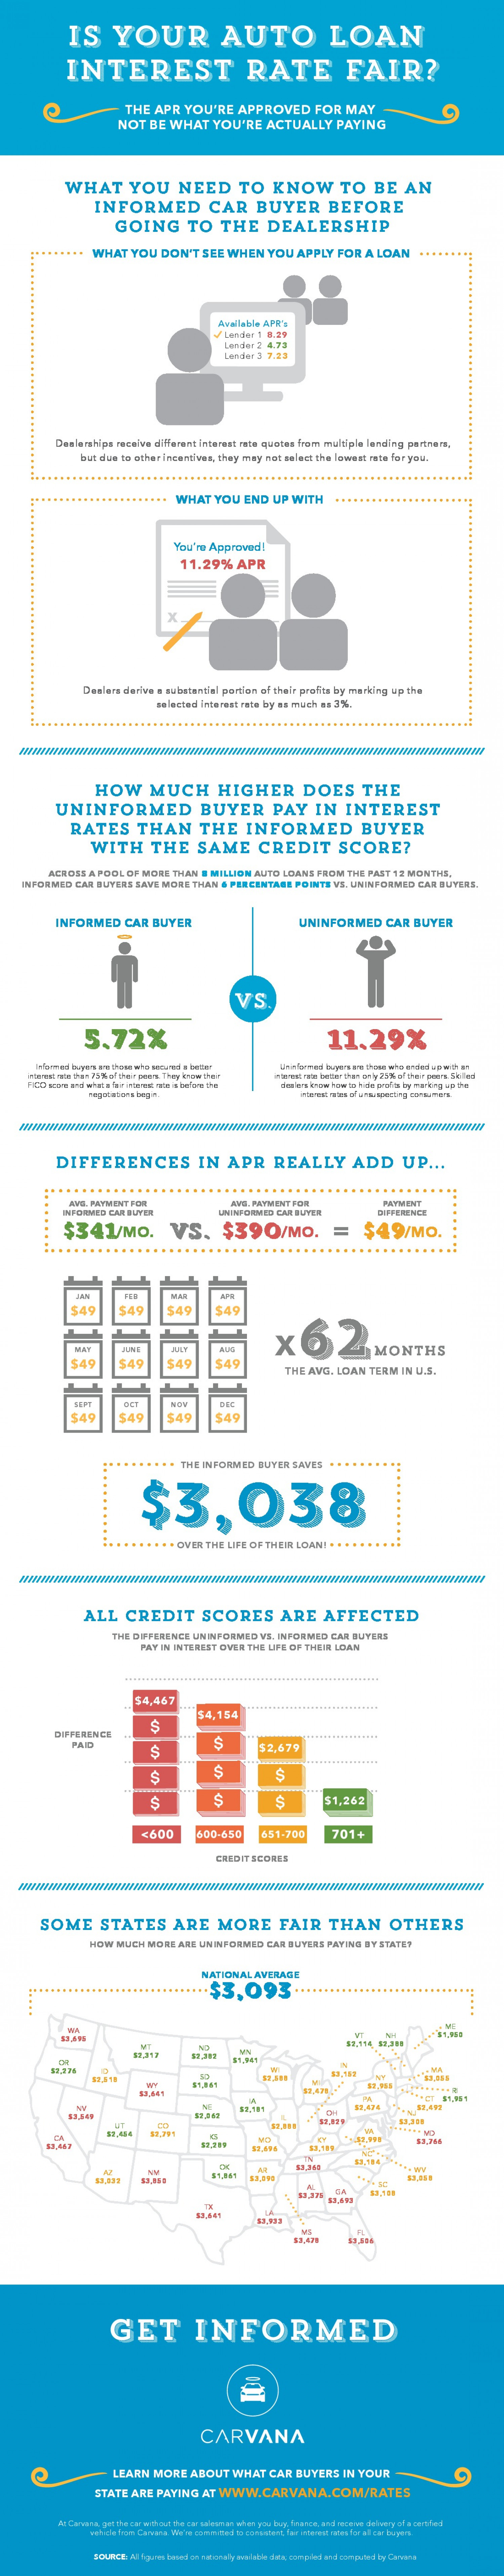 Is Your Auto Loan Interest Rate Fair? Infographic